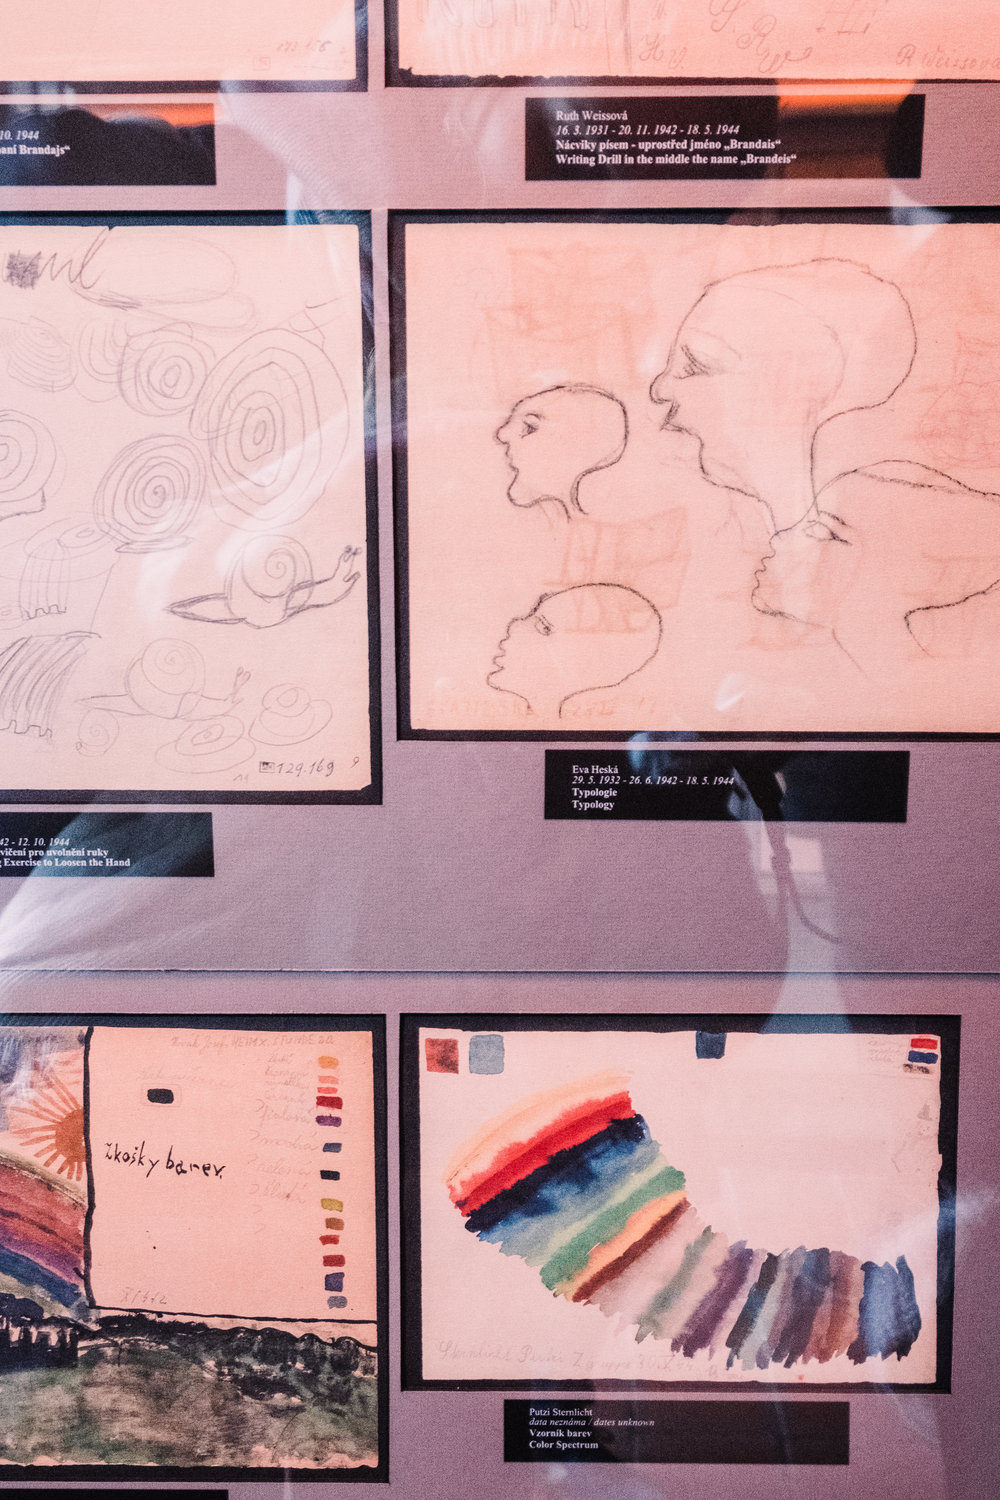 Drawing was a form of therapy for children in internment camps